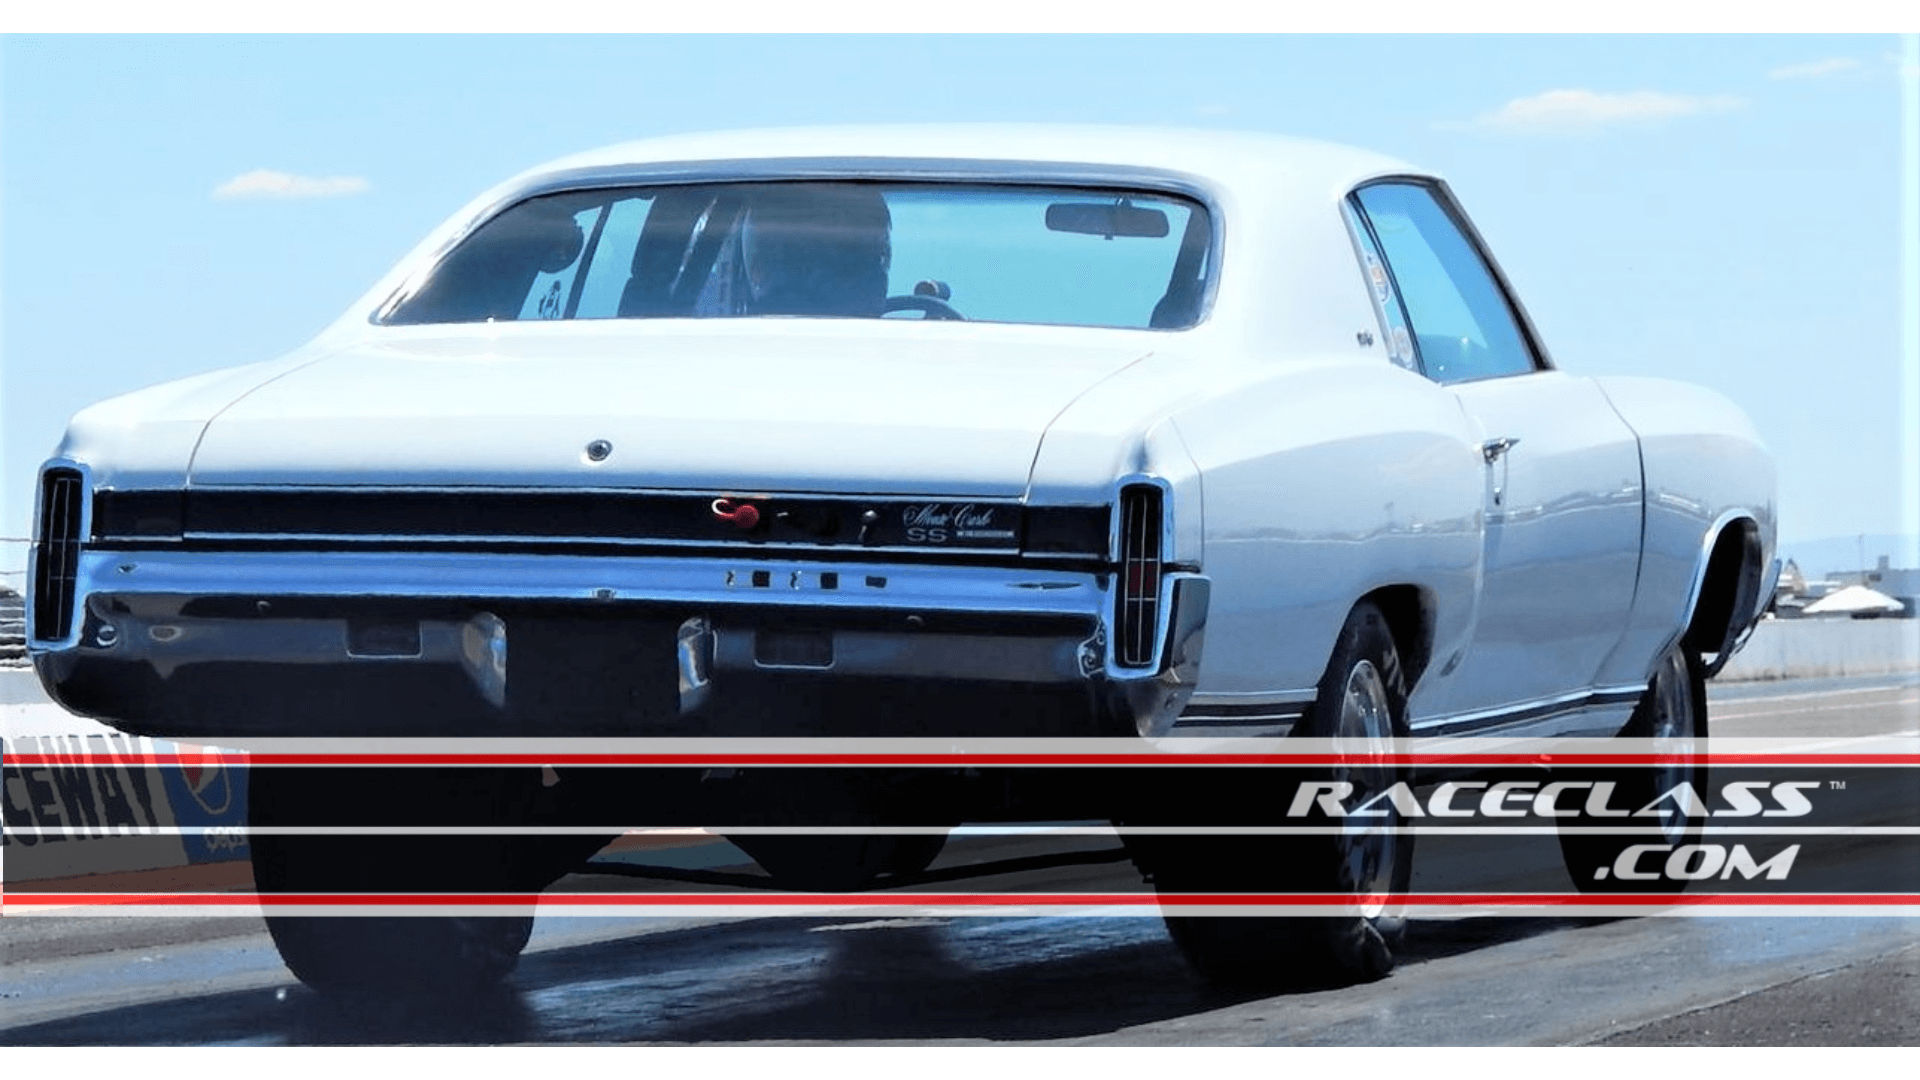 This Rust Free - 1970 Monte Carlo SS Drag Racing Car is For Sale on RaceClass.com